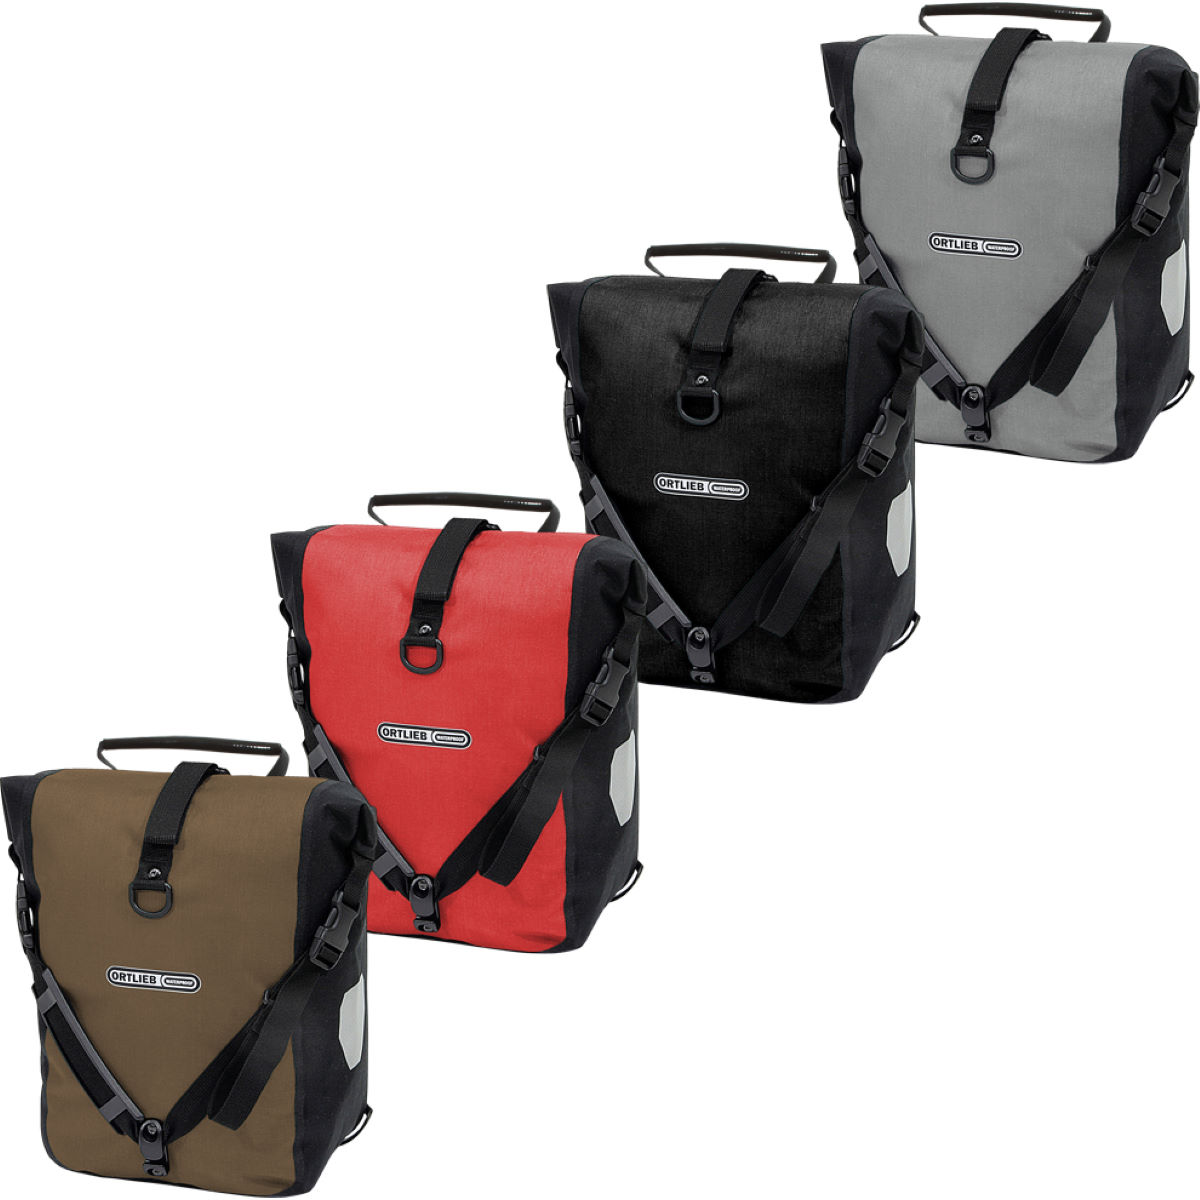 Ortlieb Front Roller Plus Panniers 2014